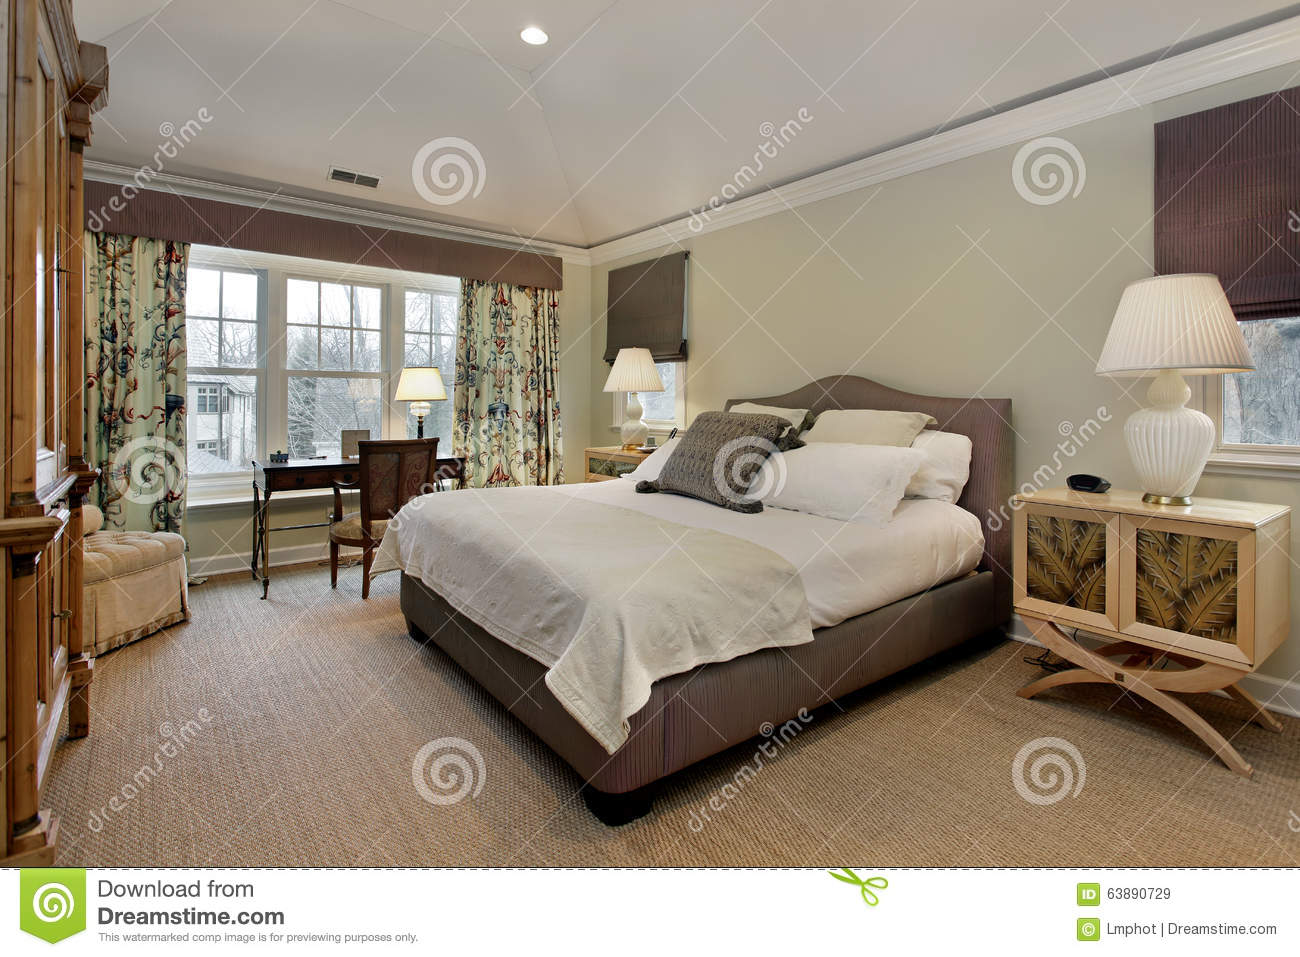 Master Bedroom Tray Ceiling master bedroom with tray ceiling stock photo - image: 63890729